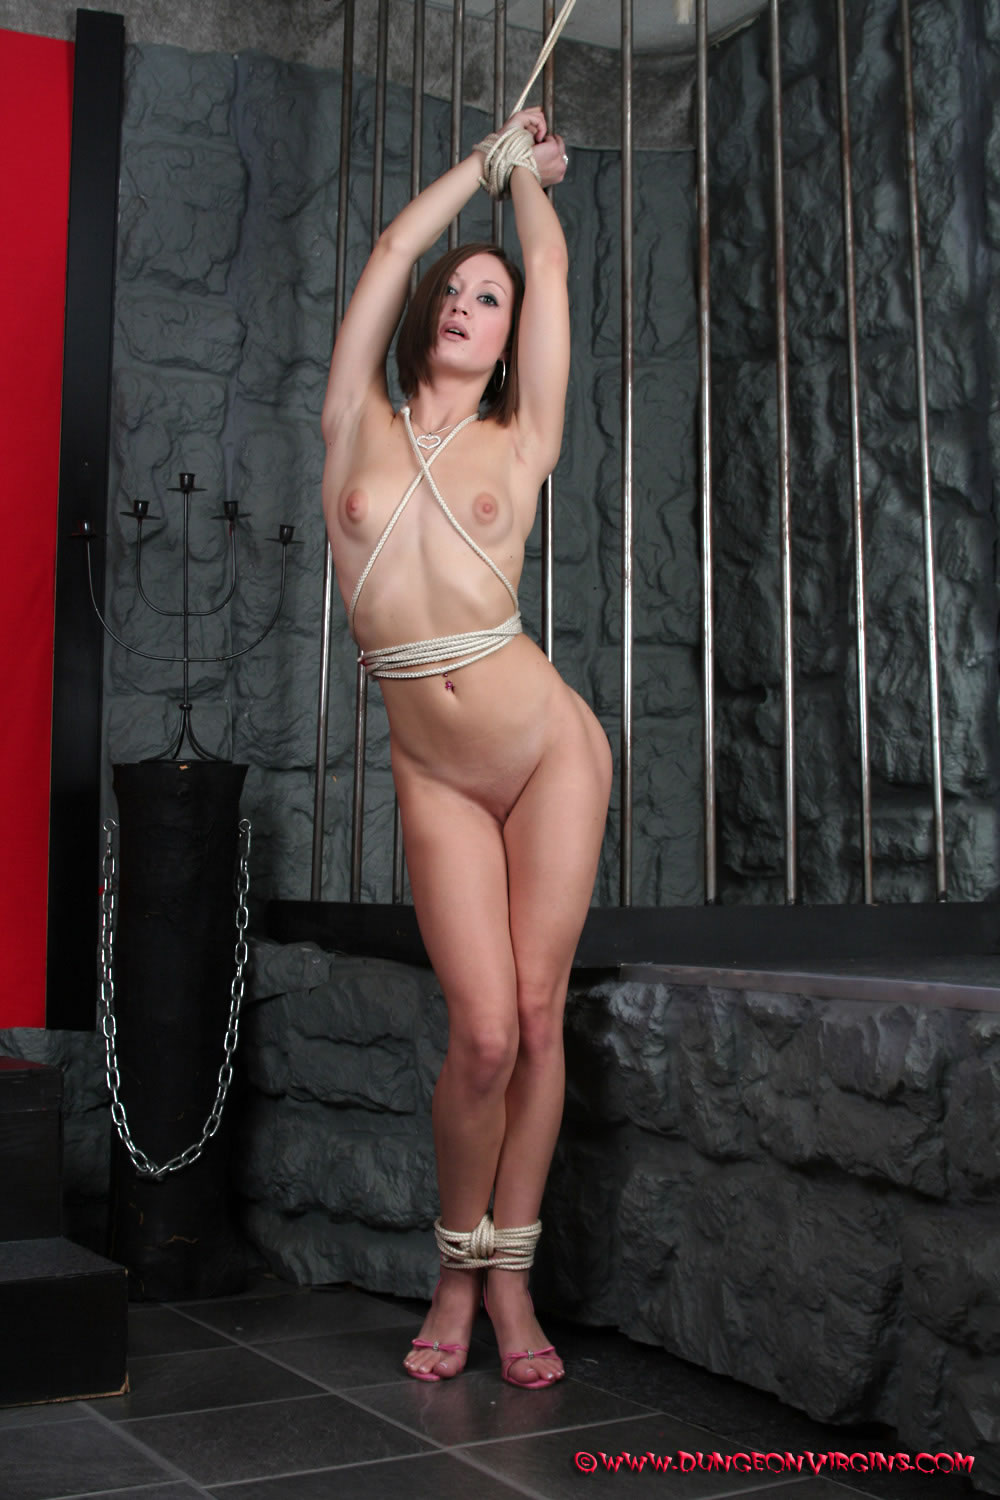 Full length side view of nude aerial dancer with red silk ropes